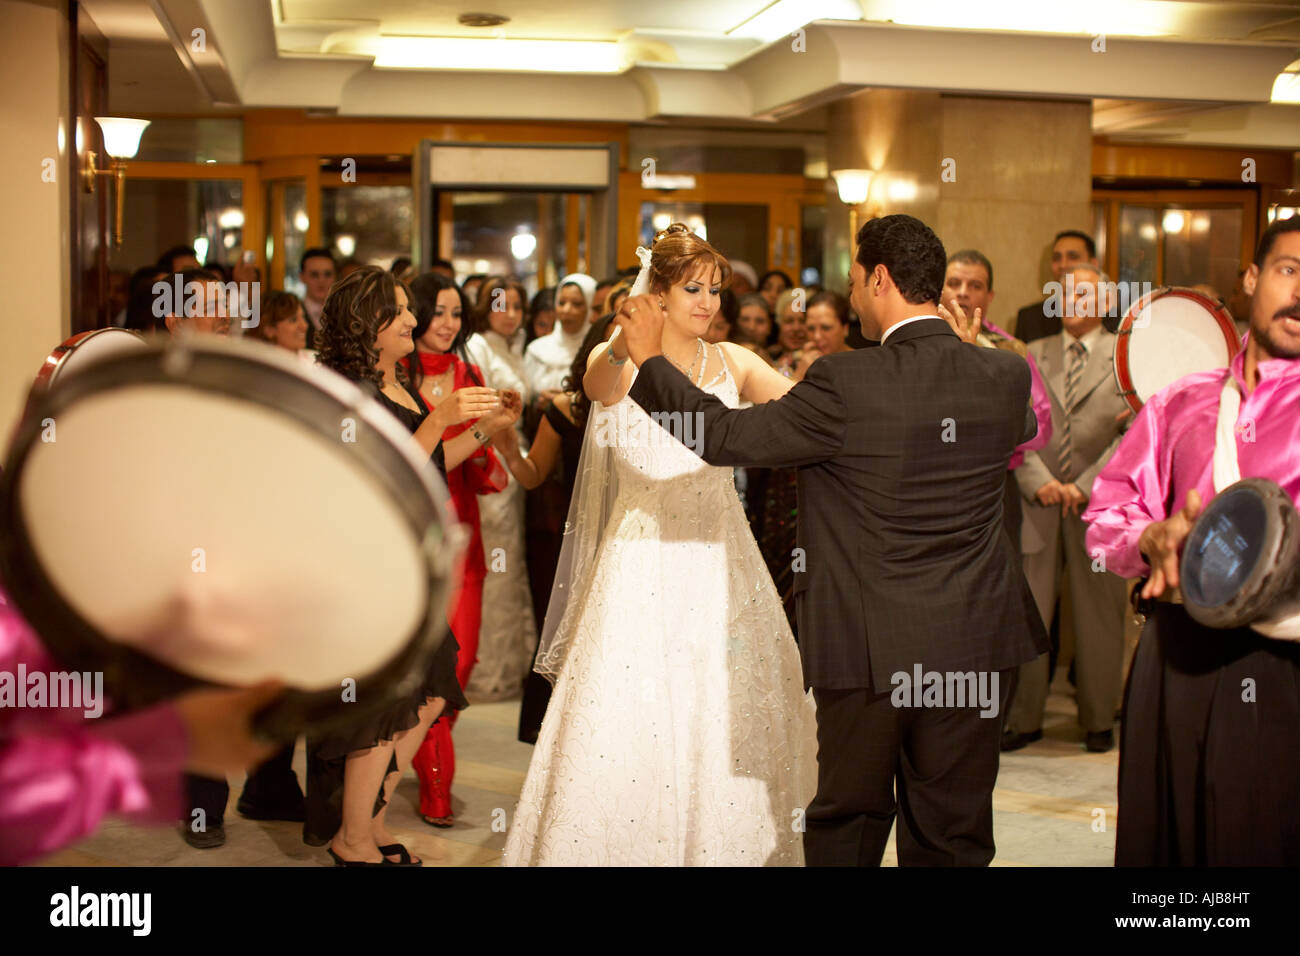 Bride Groom dancing with wedding guests at marriage ceremony party with band playing in hotel lobby Cairo Egypt - Stock Image